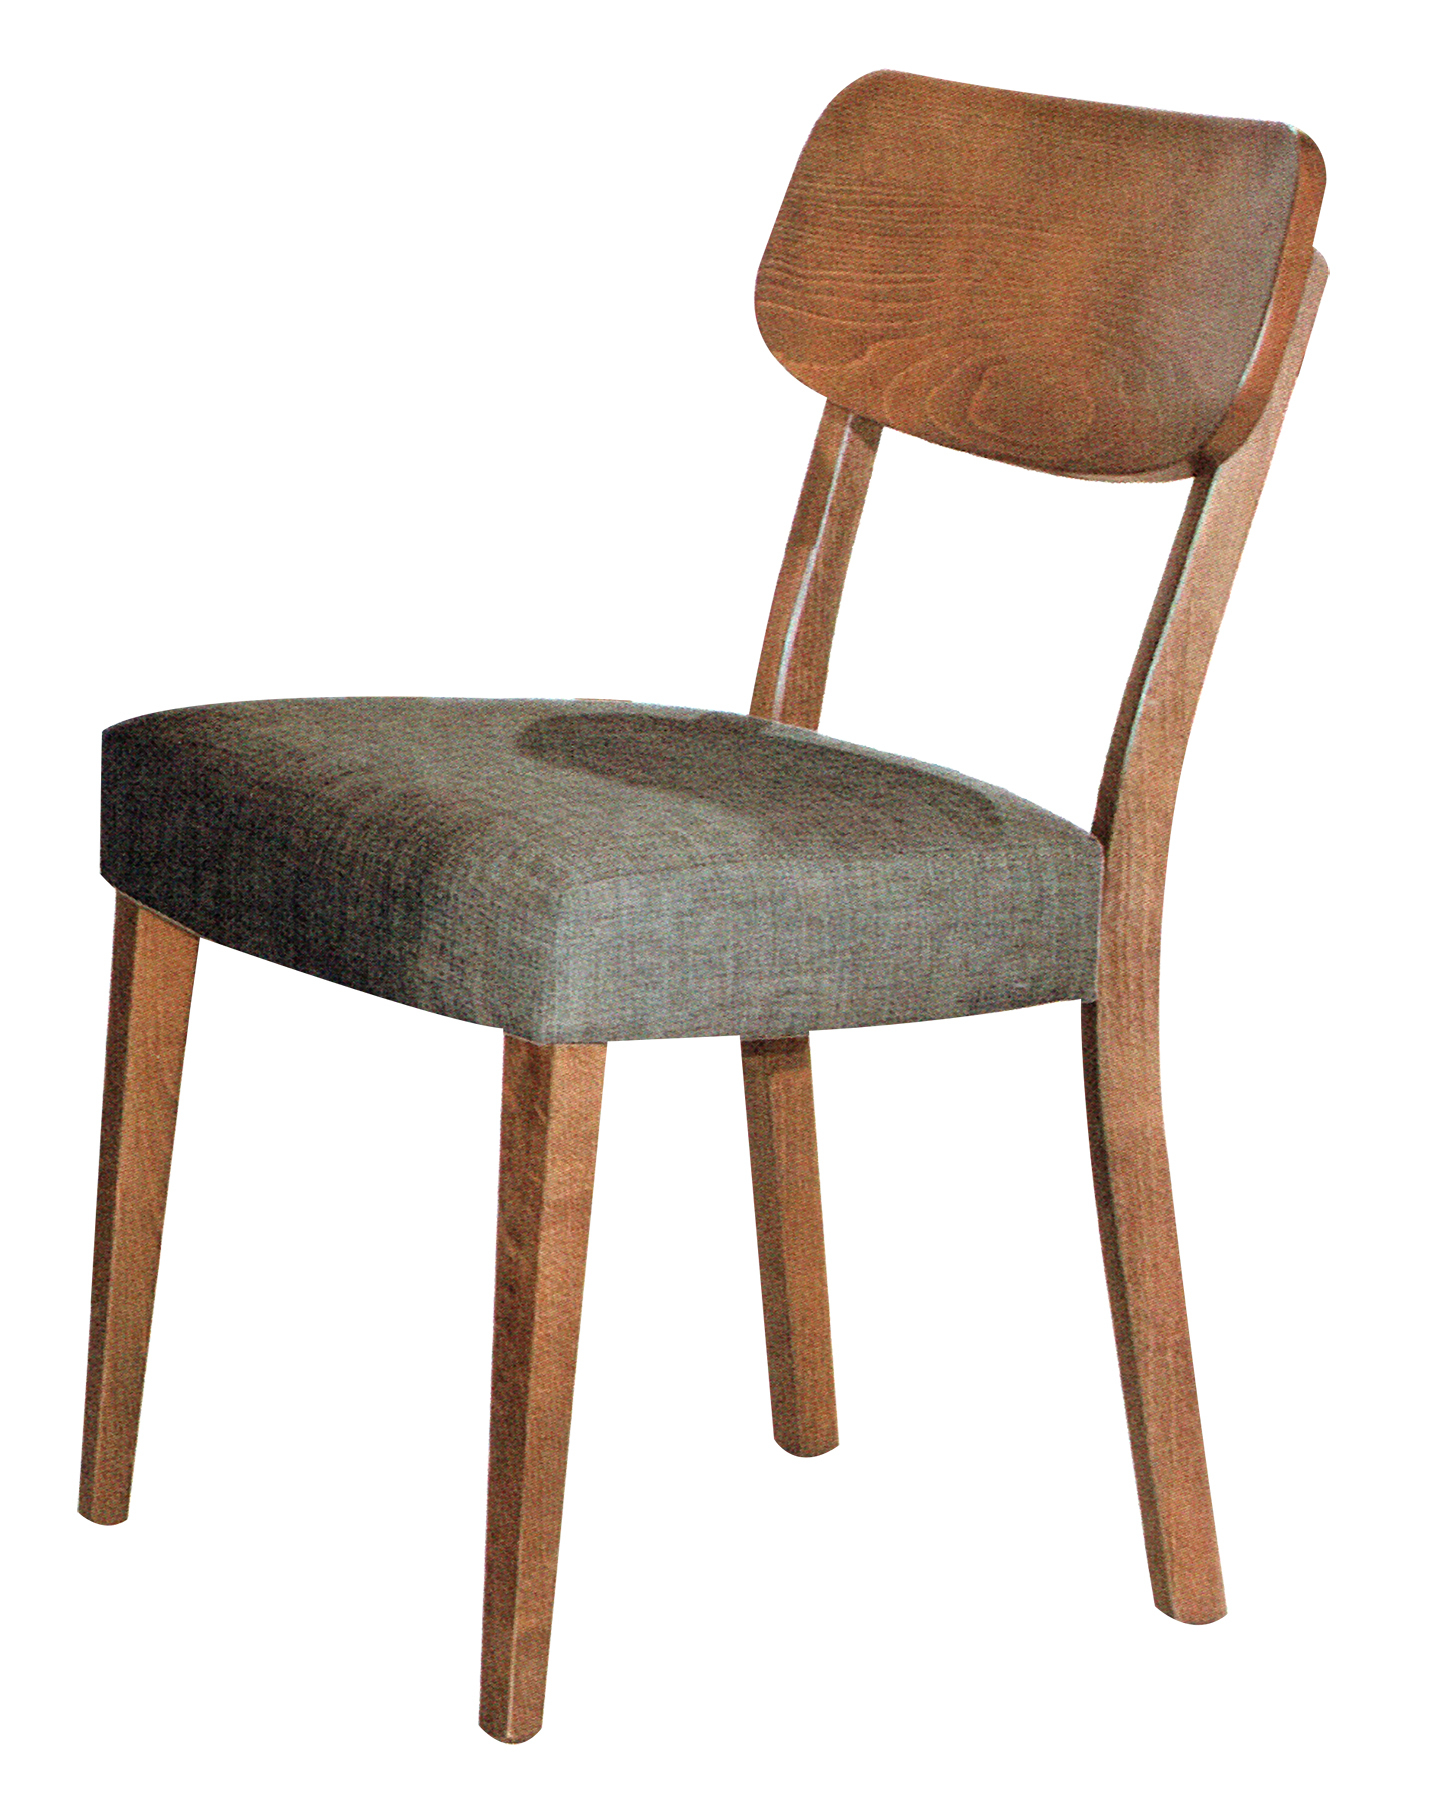 dining chair tiffany.jpg